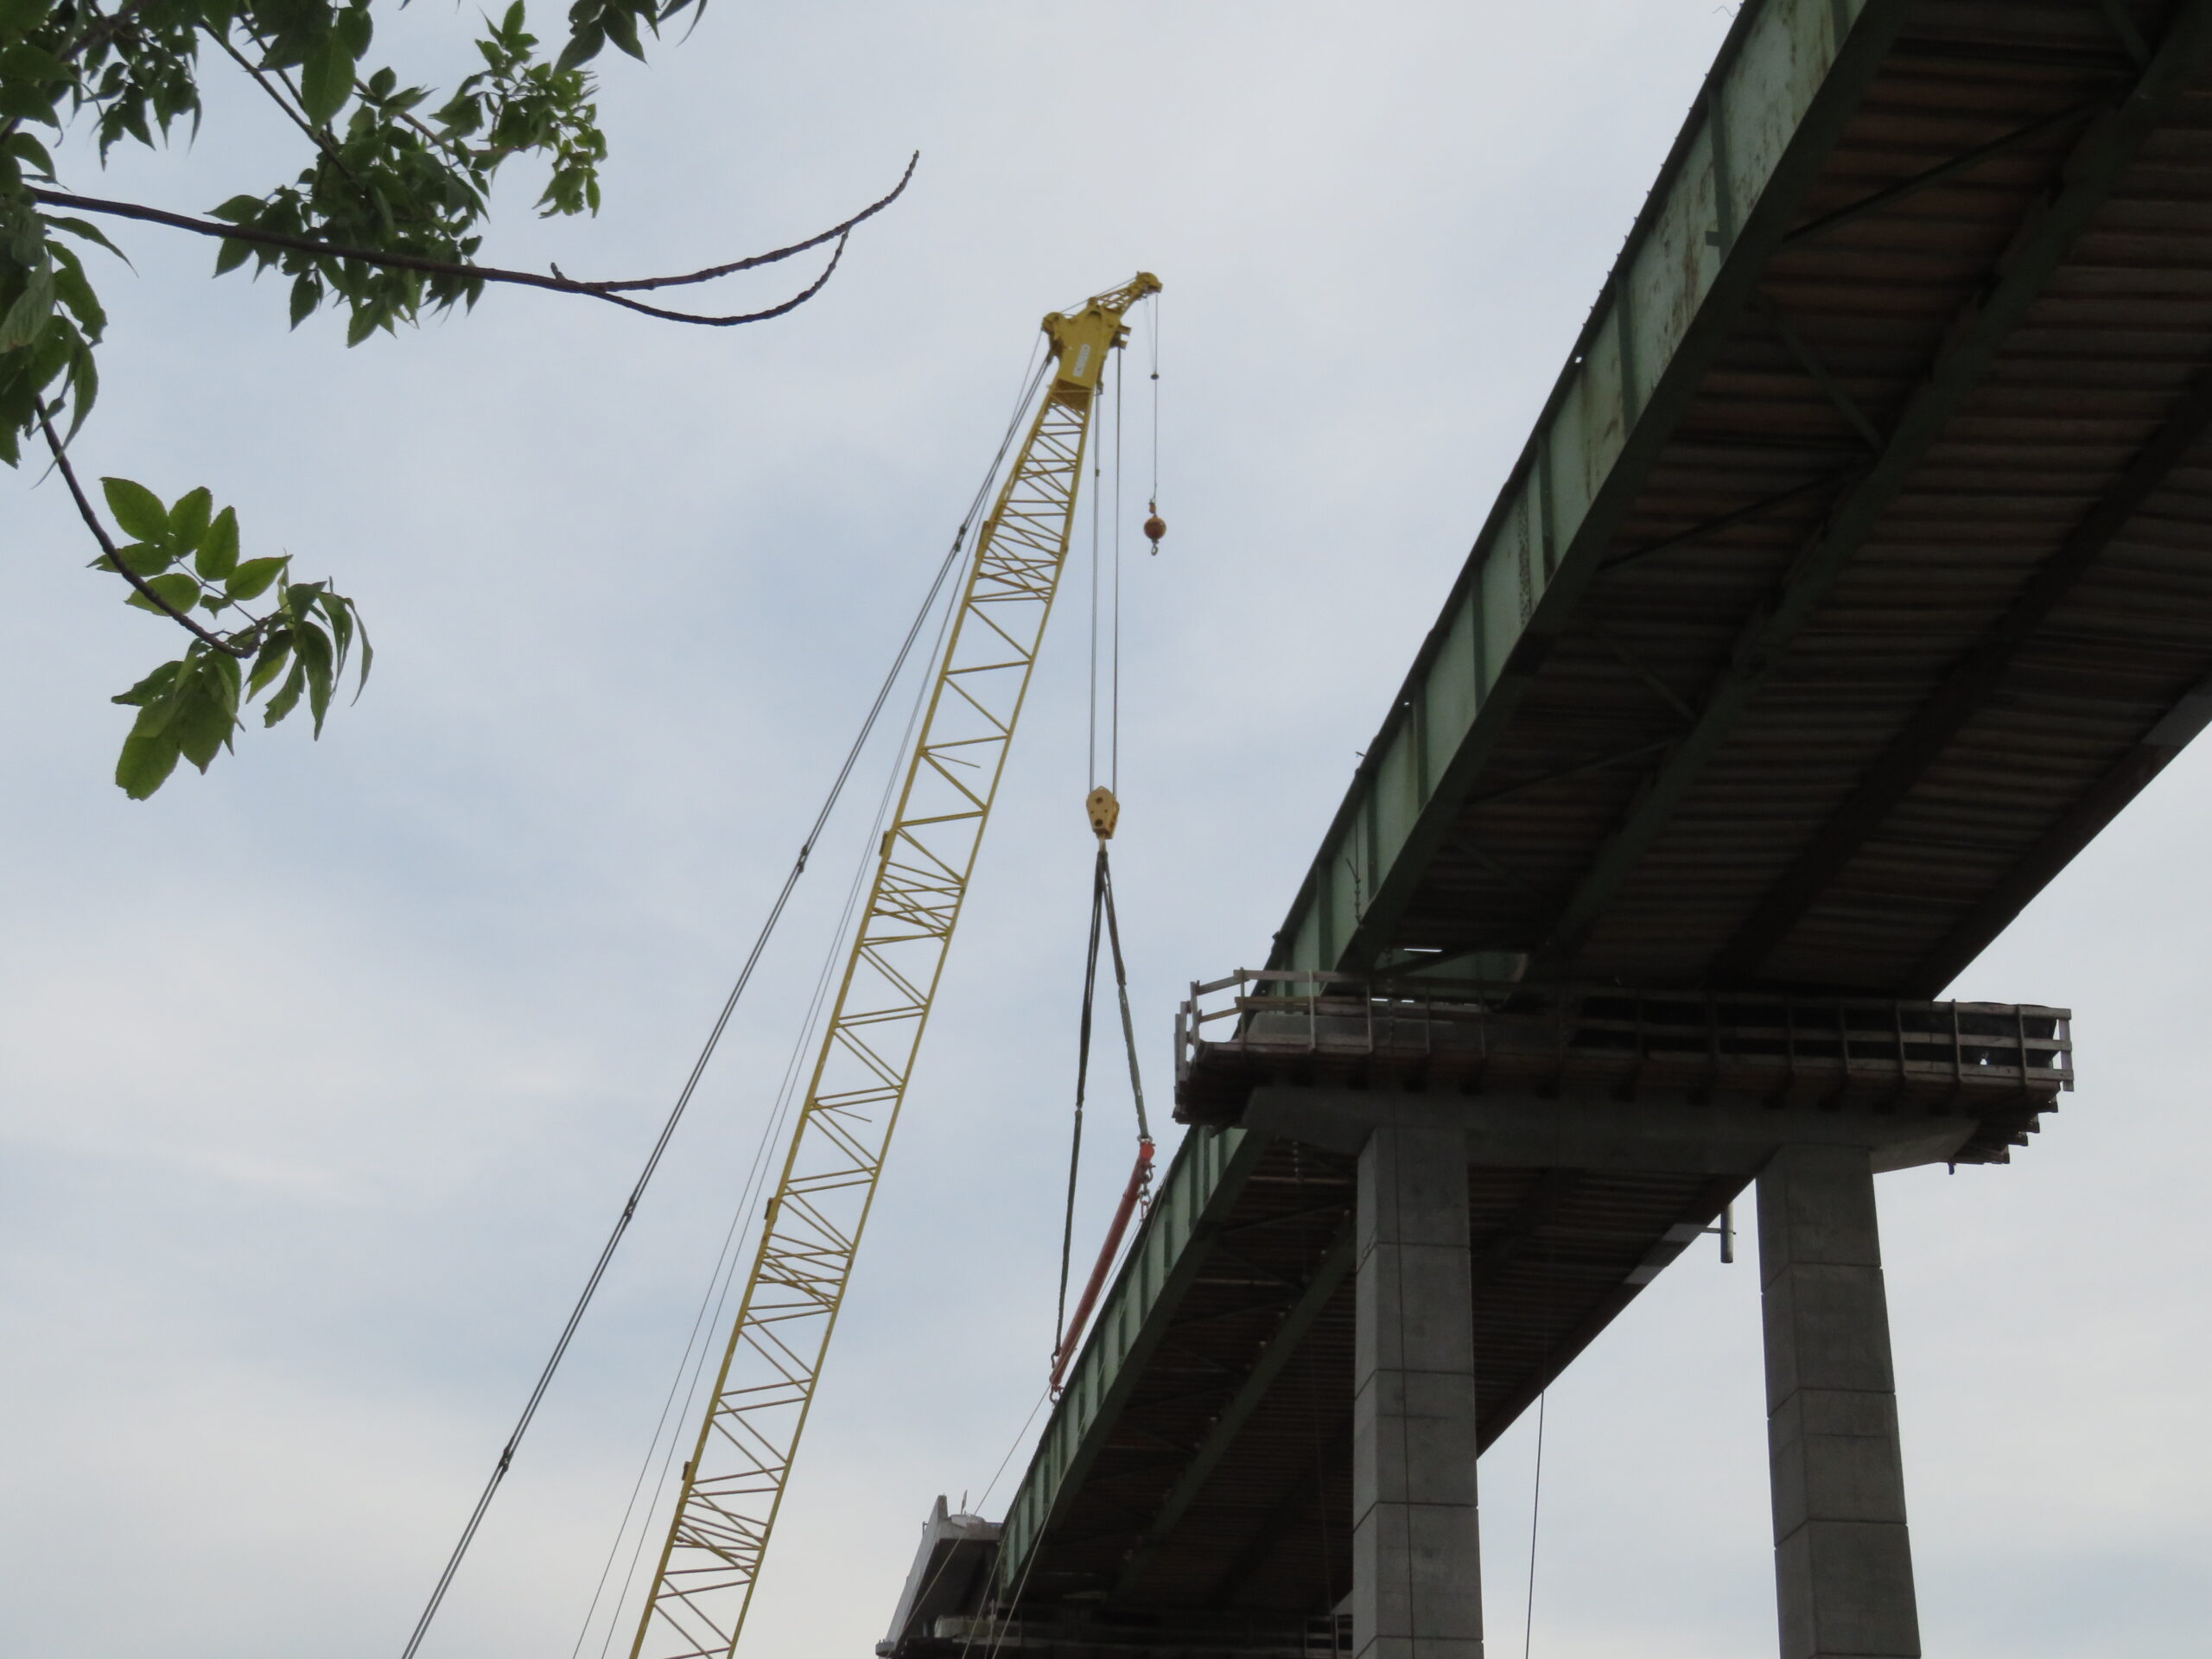 Spreader bar hooked up to the girder for removal